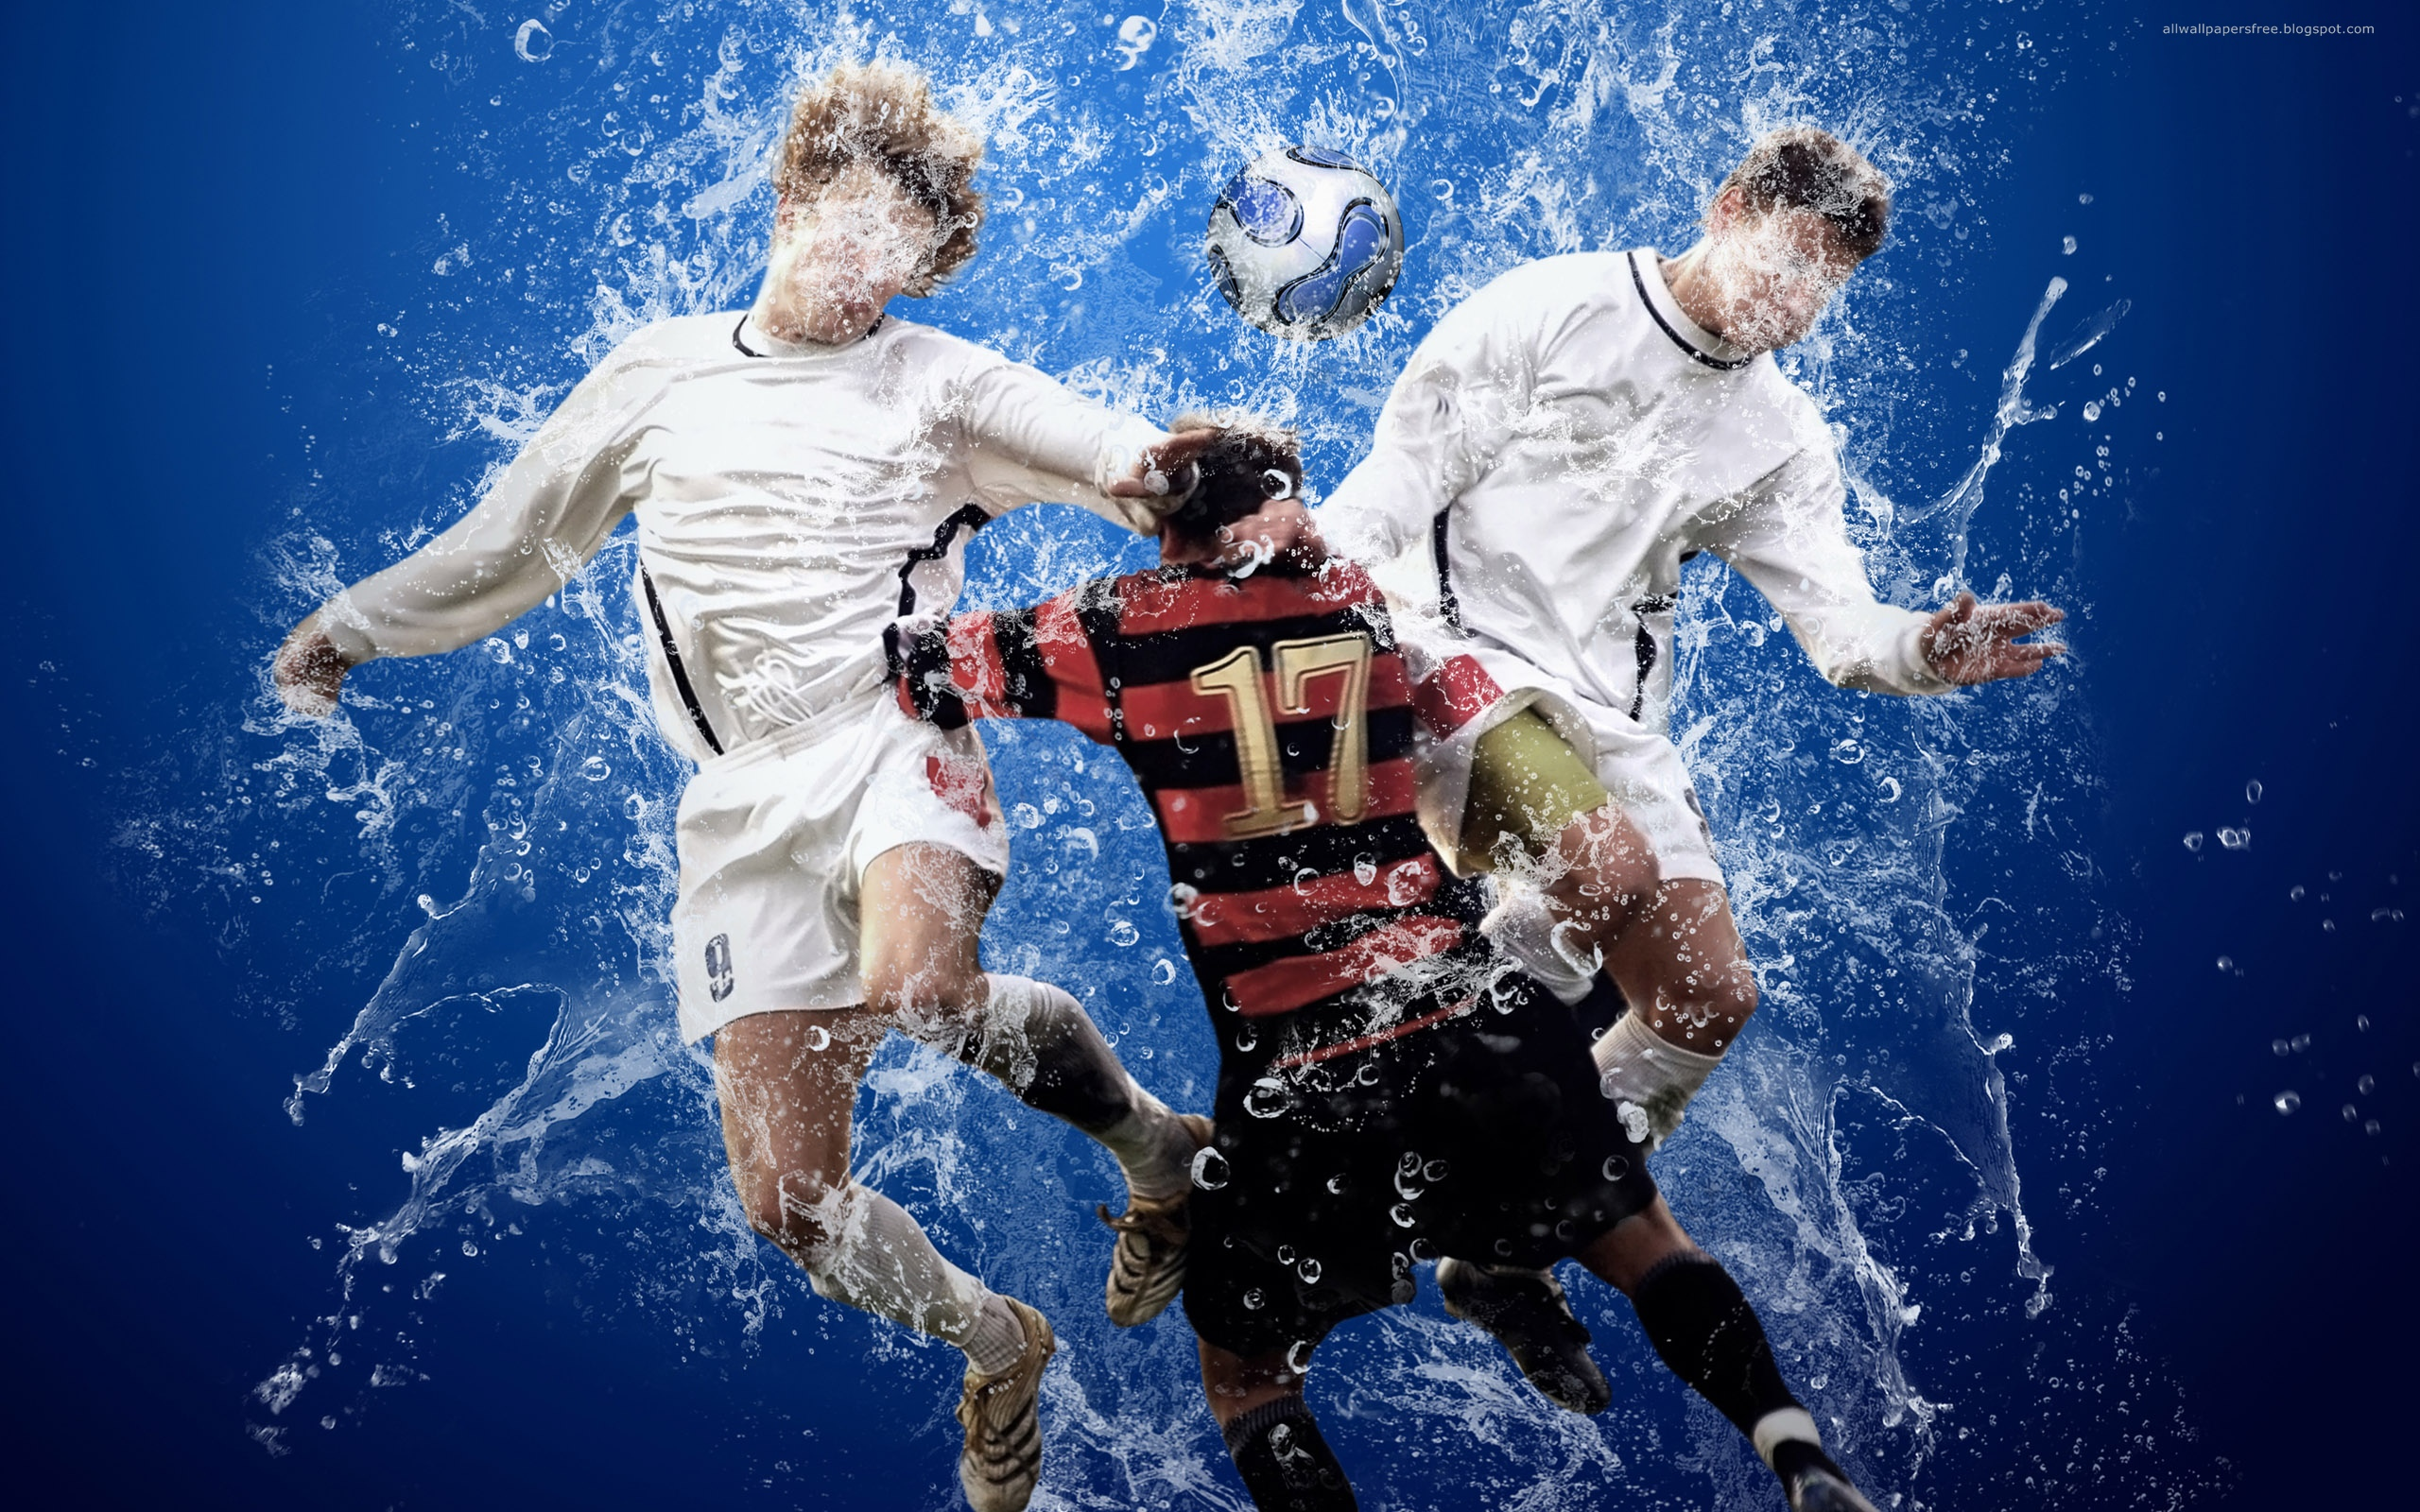 soccer images free